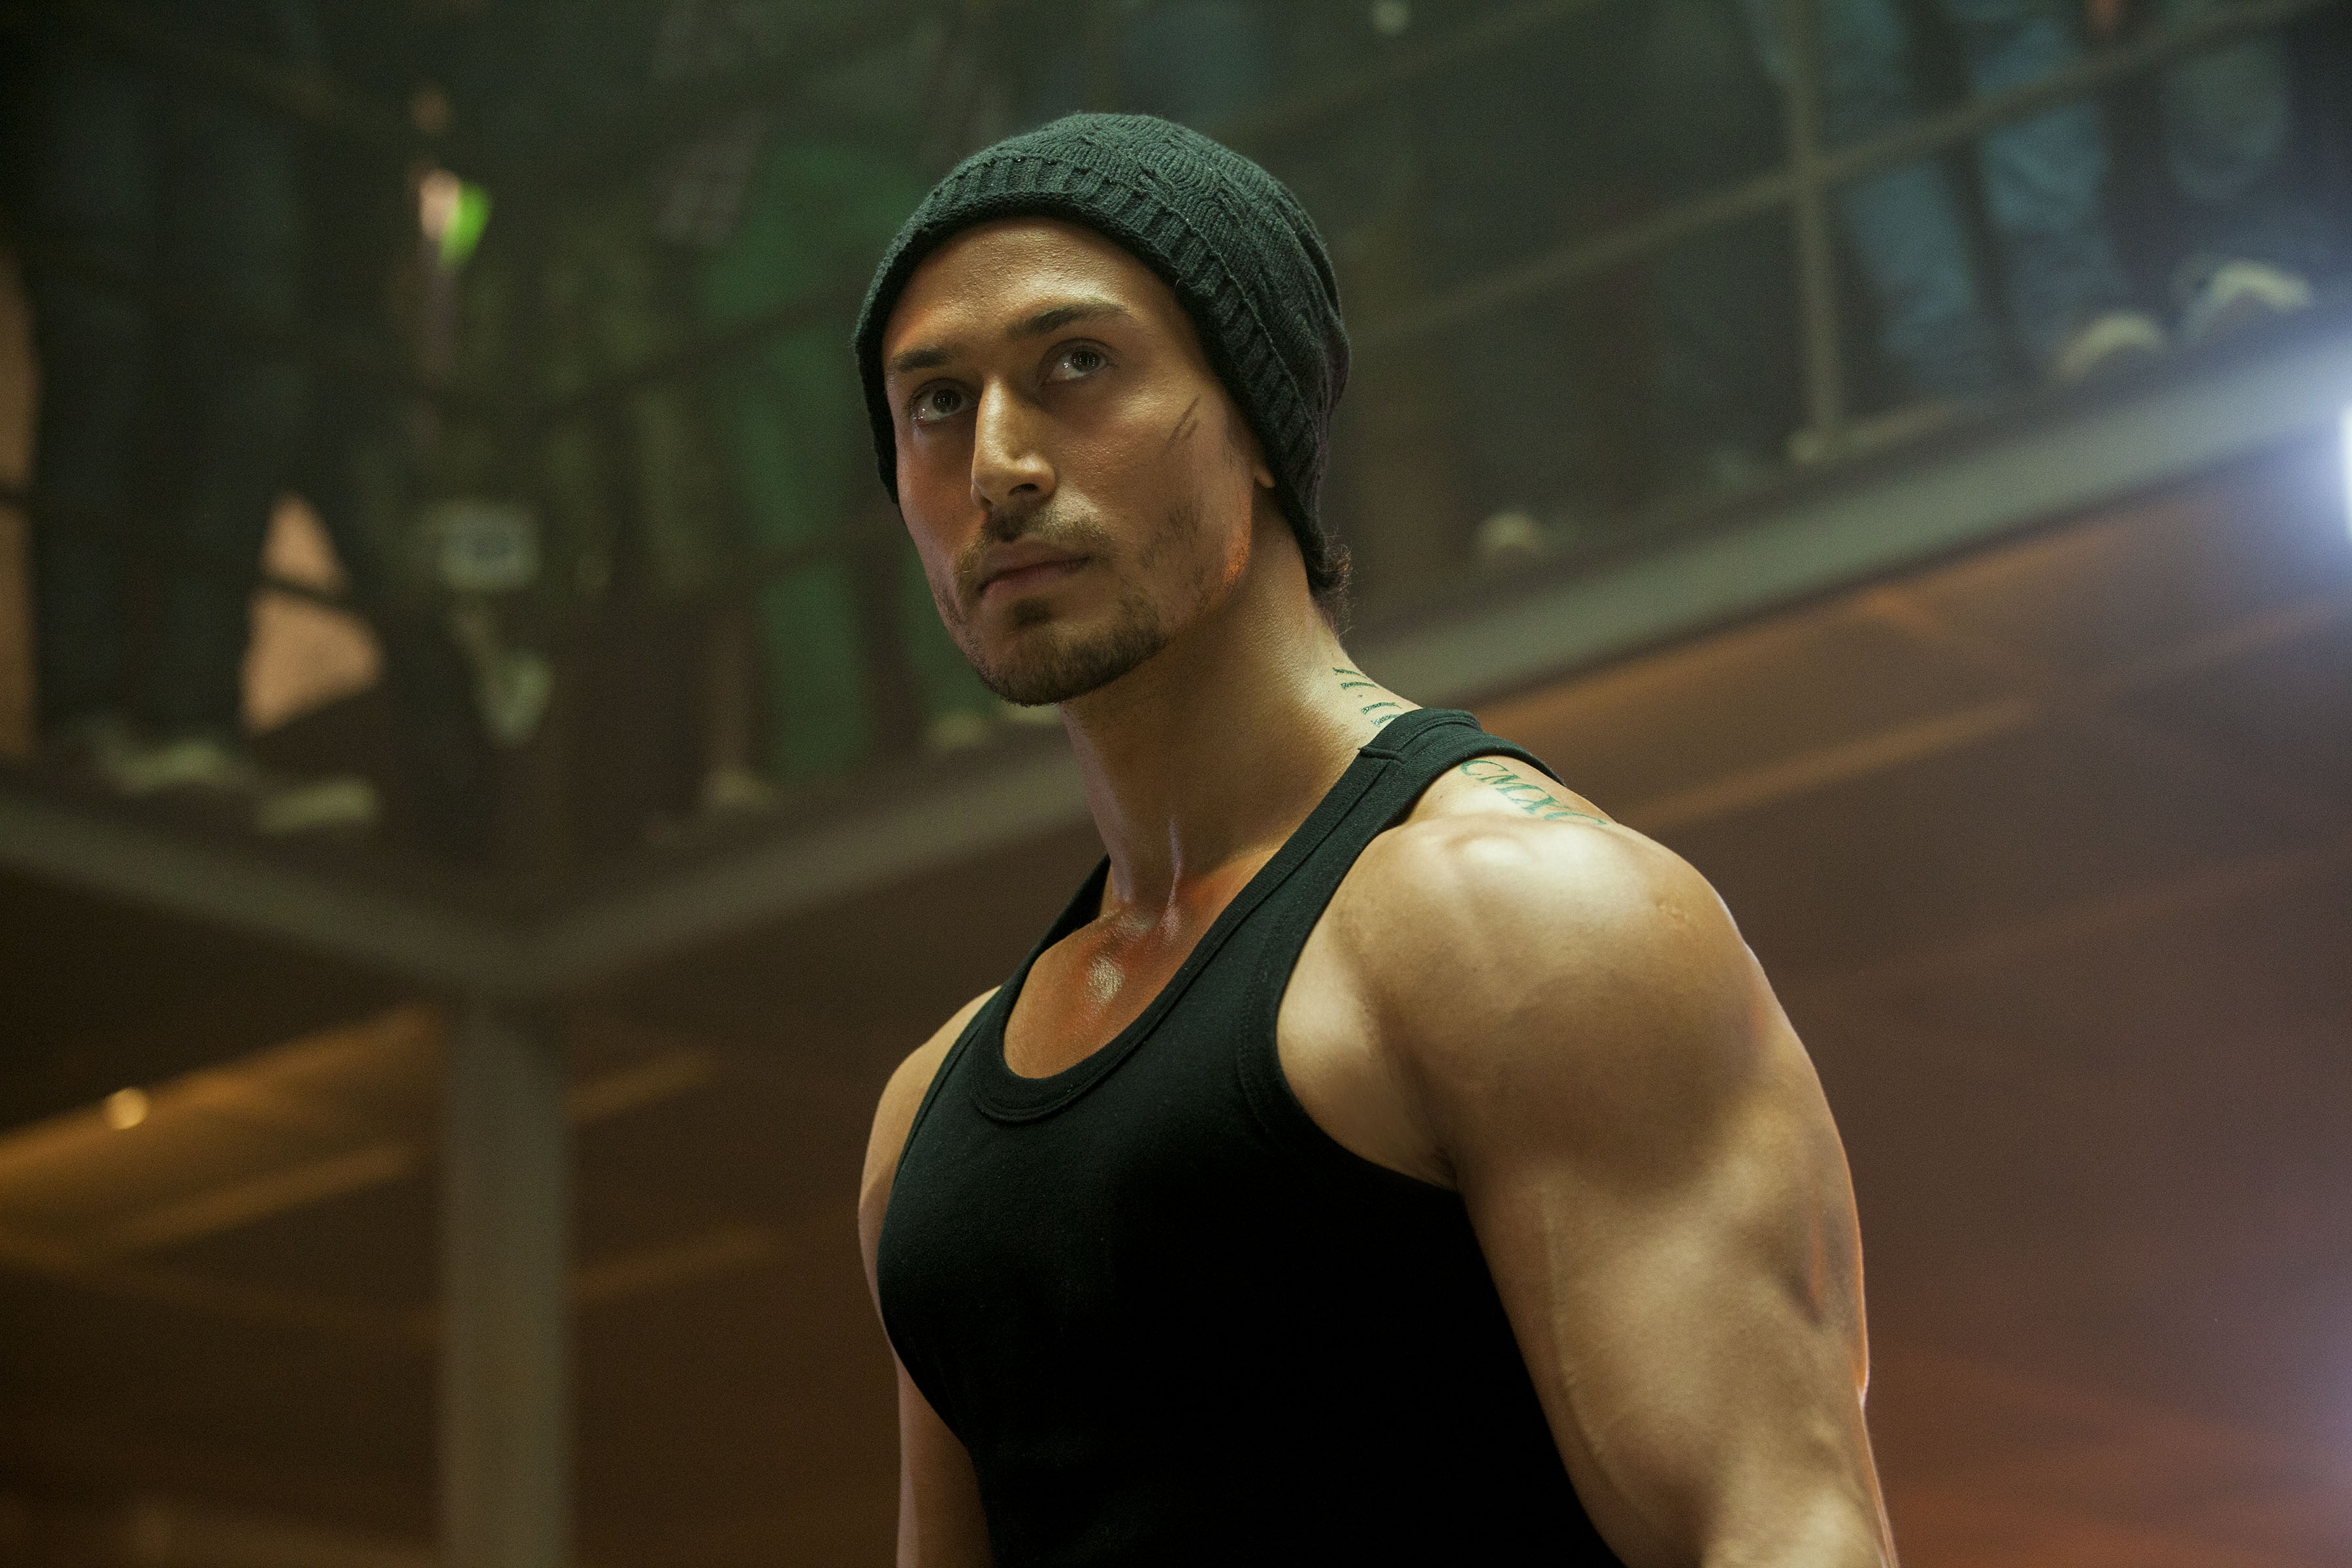 Baaghi Q Amp A With Tiger Shroff And Shraddha Kapoor Out